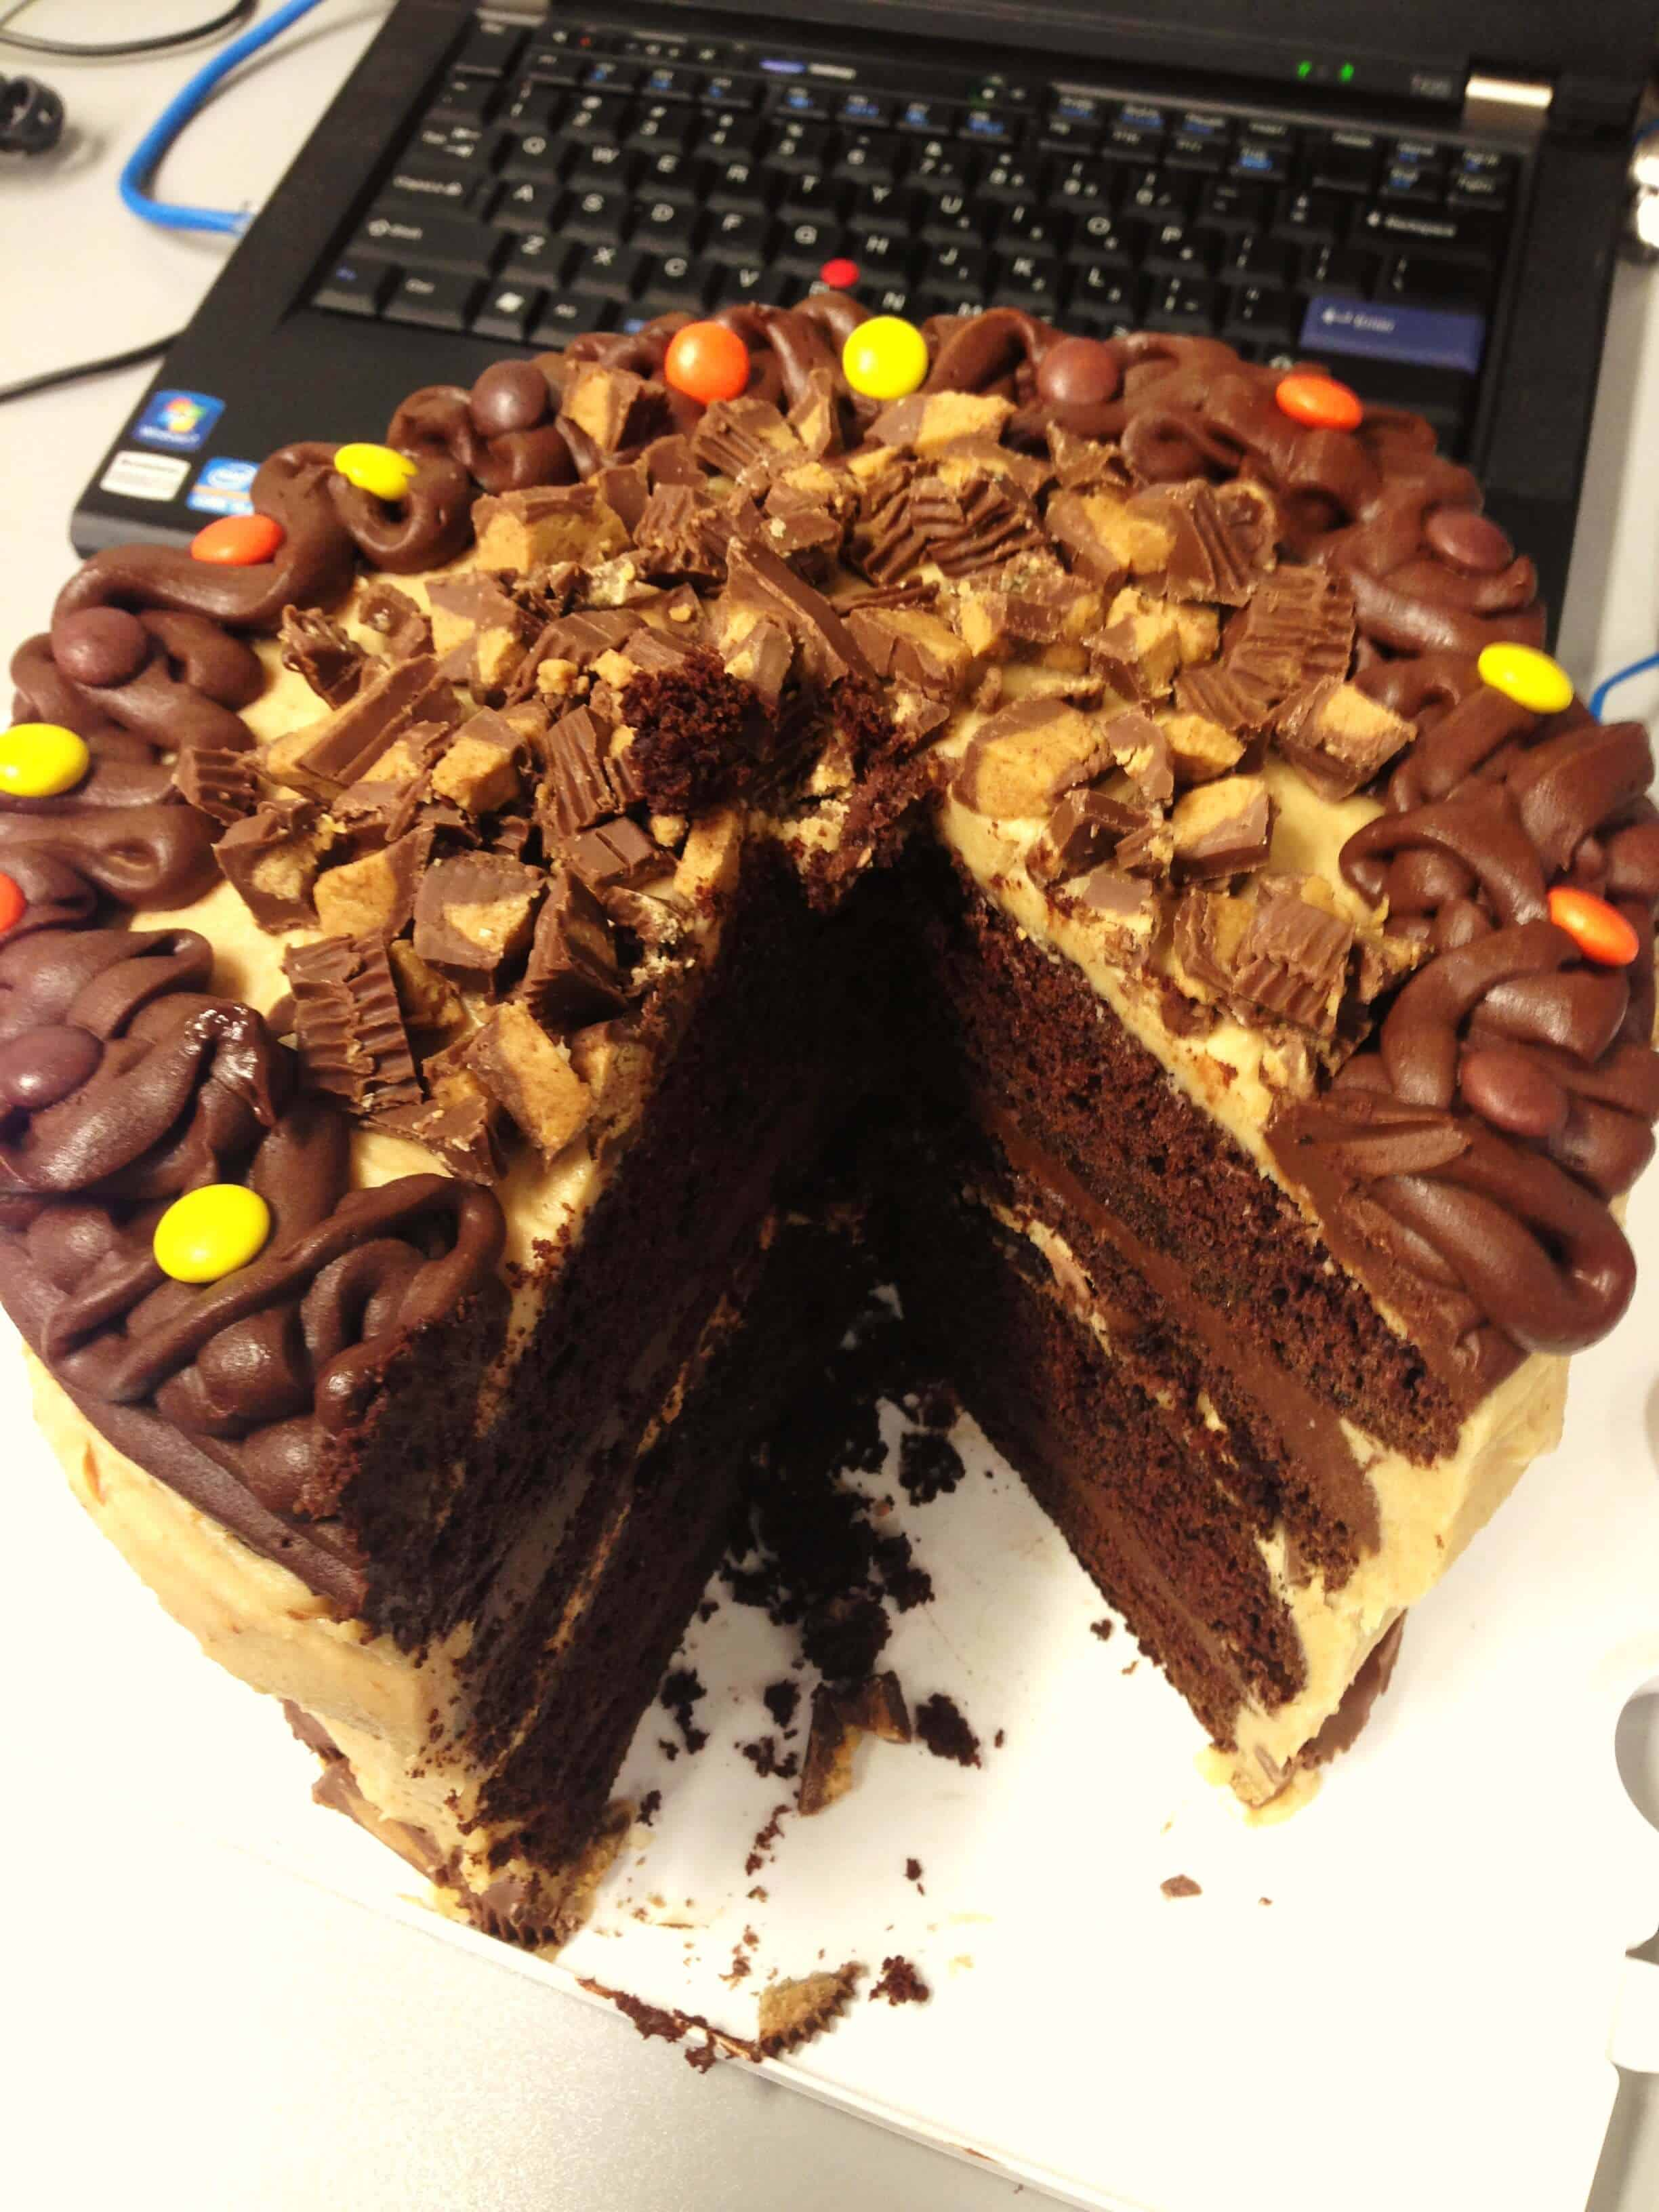 image of a reese's peanut butter cup cake that's been sliced into